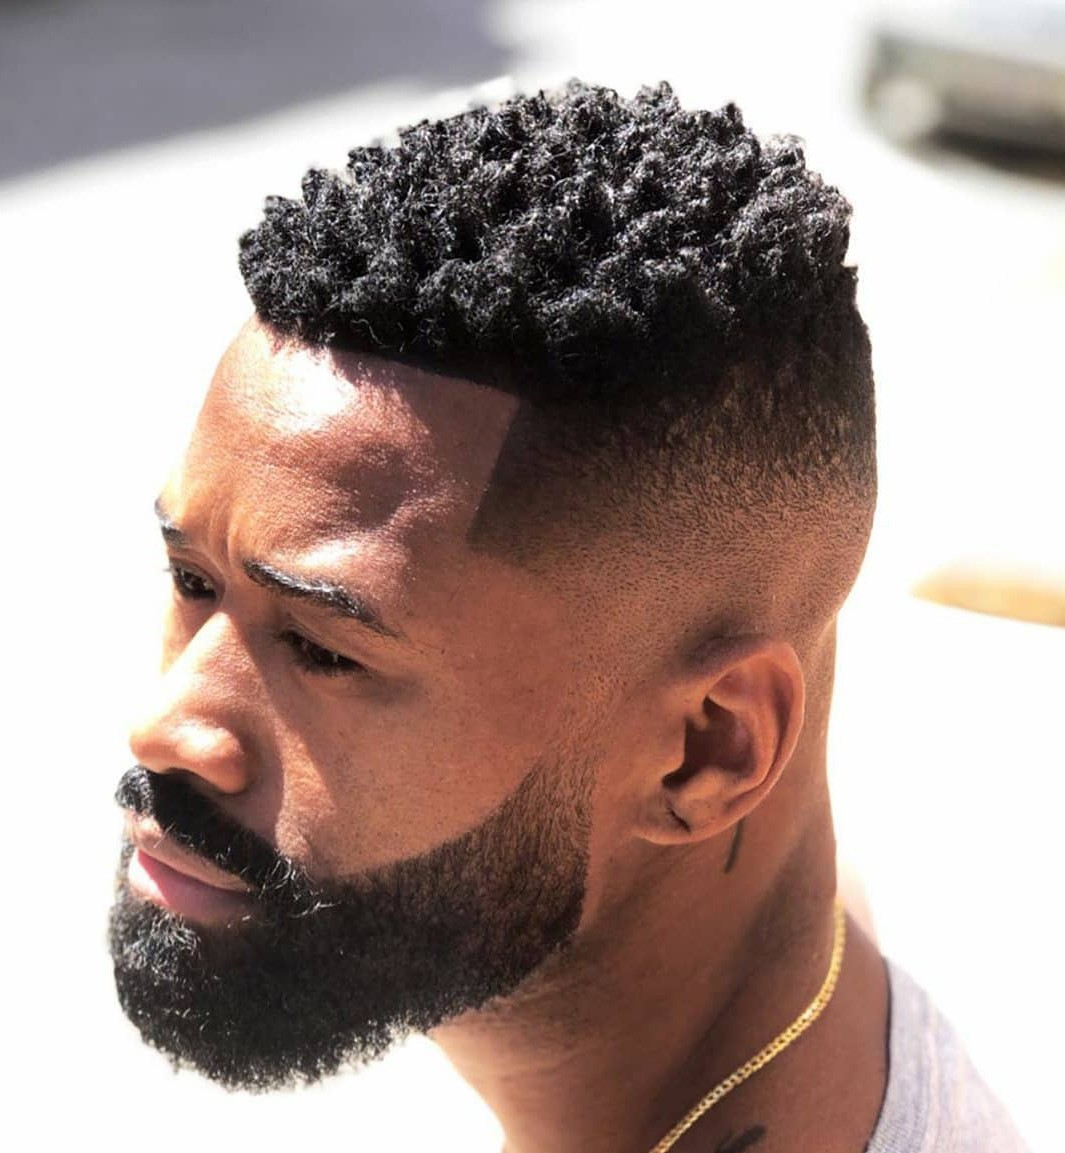 The picture of the man which answers the question: What Is a Temp Fade Haircut.